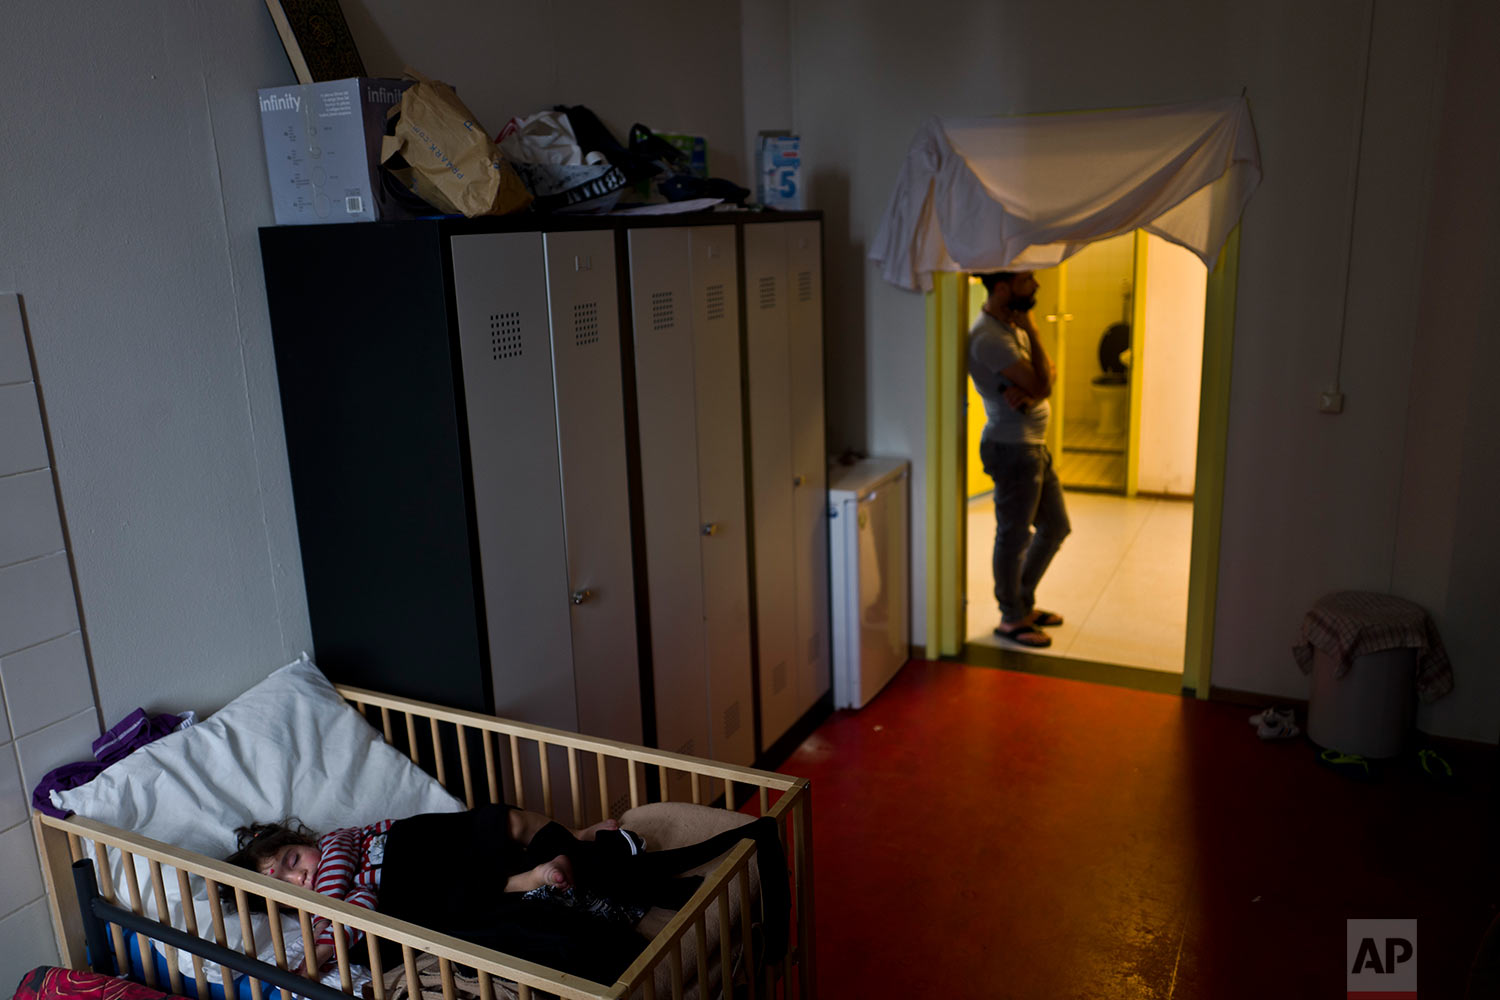 In this Tuesday, June 27, 2017 photo, 20-month-old Naya Mahmoud, a refugee from Aleppo, Syria, sleeps in a crib inside her family's room at the former prison of Bijlmerbajes in Amsterdam, Netherlands. (AP Photo/Muhammed Muheisen)